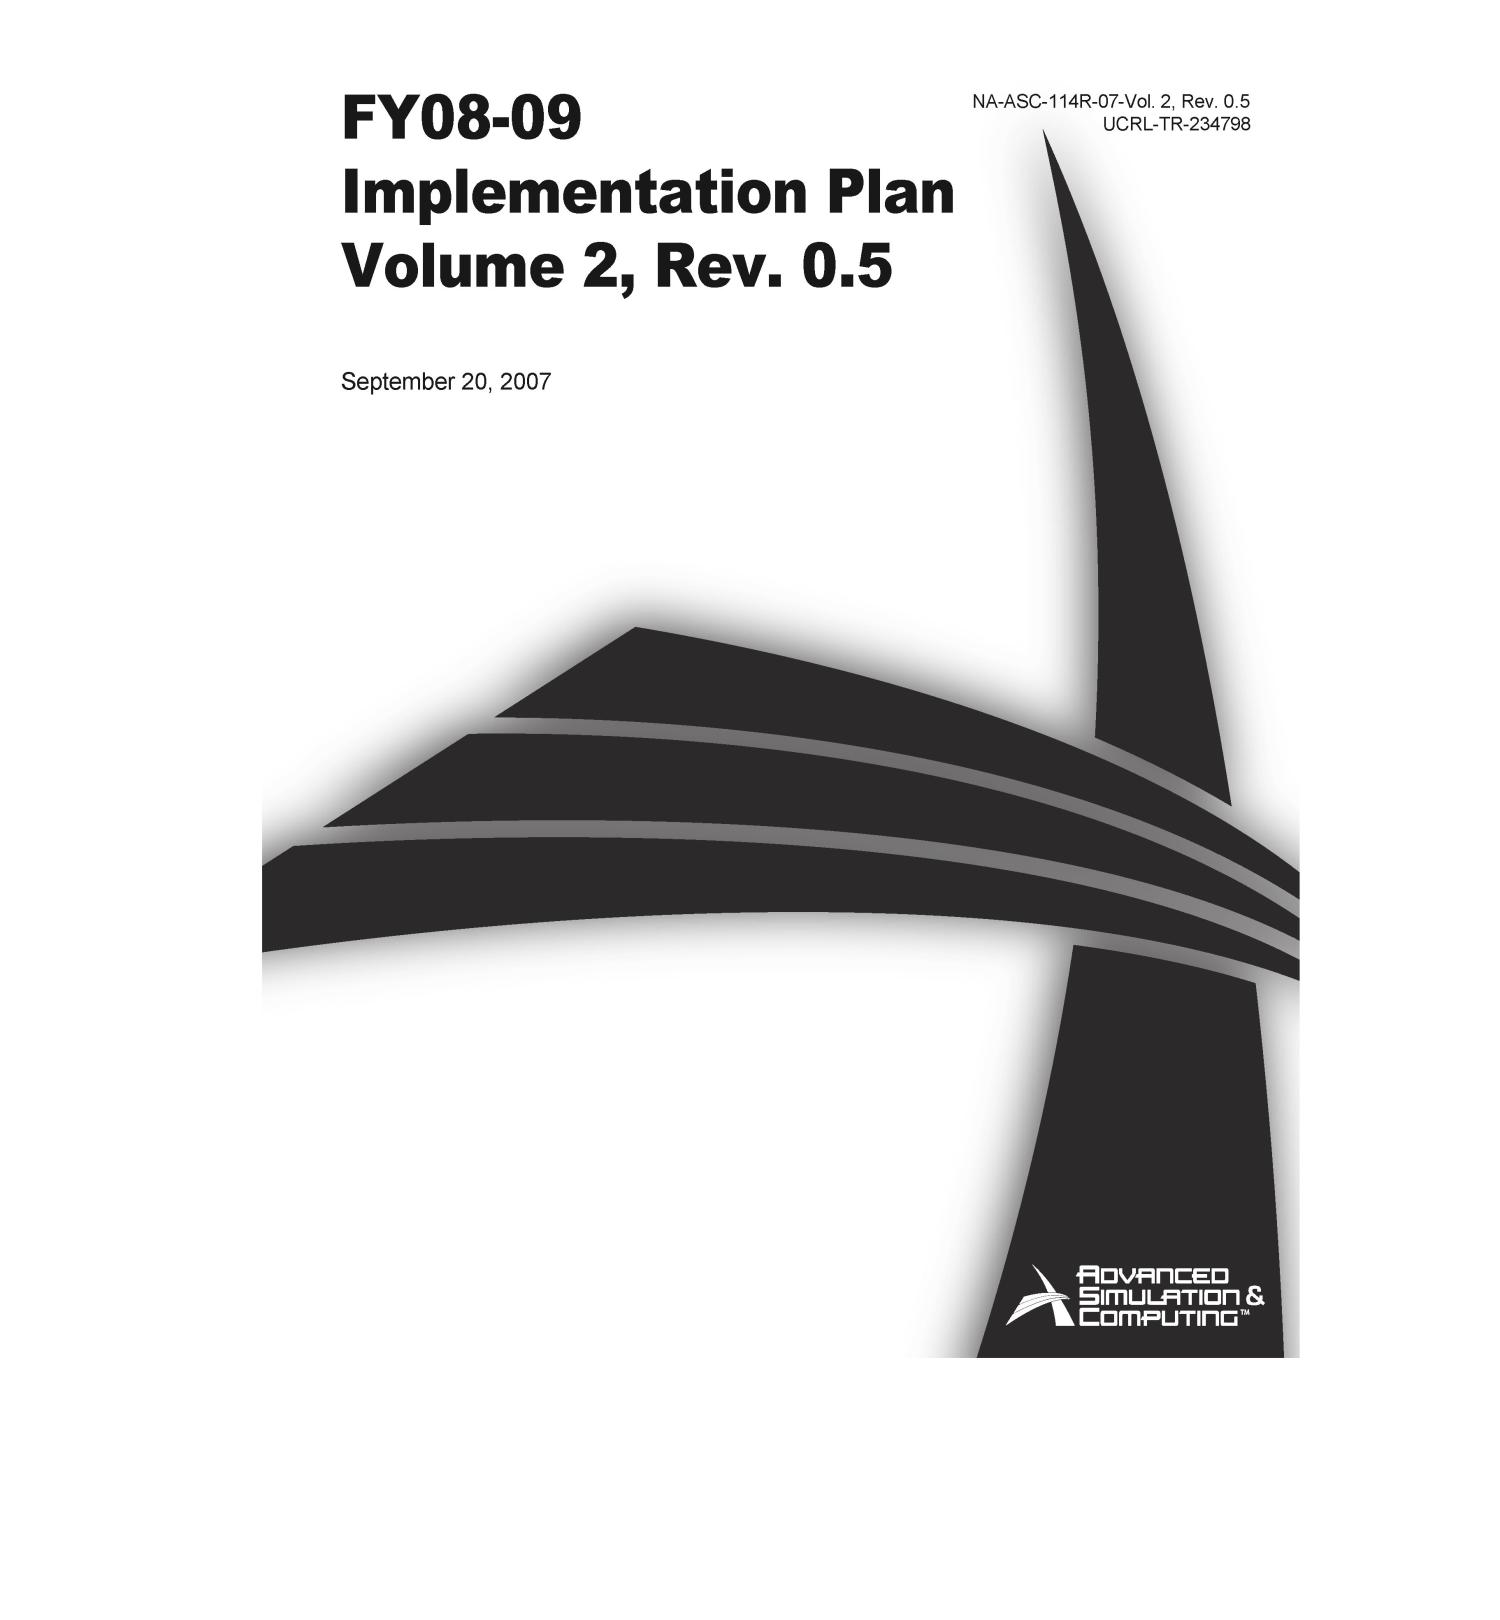 Advanced Simulation and Computing FY08-09 Implementation Plan, Volume 2, Revision 0.5                                                                                                      [Sequence #]: 1 of 133